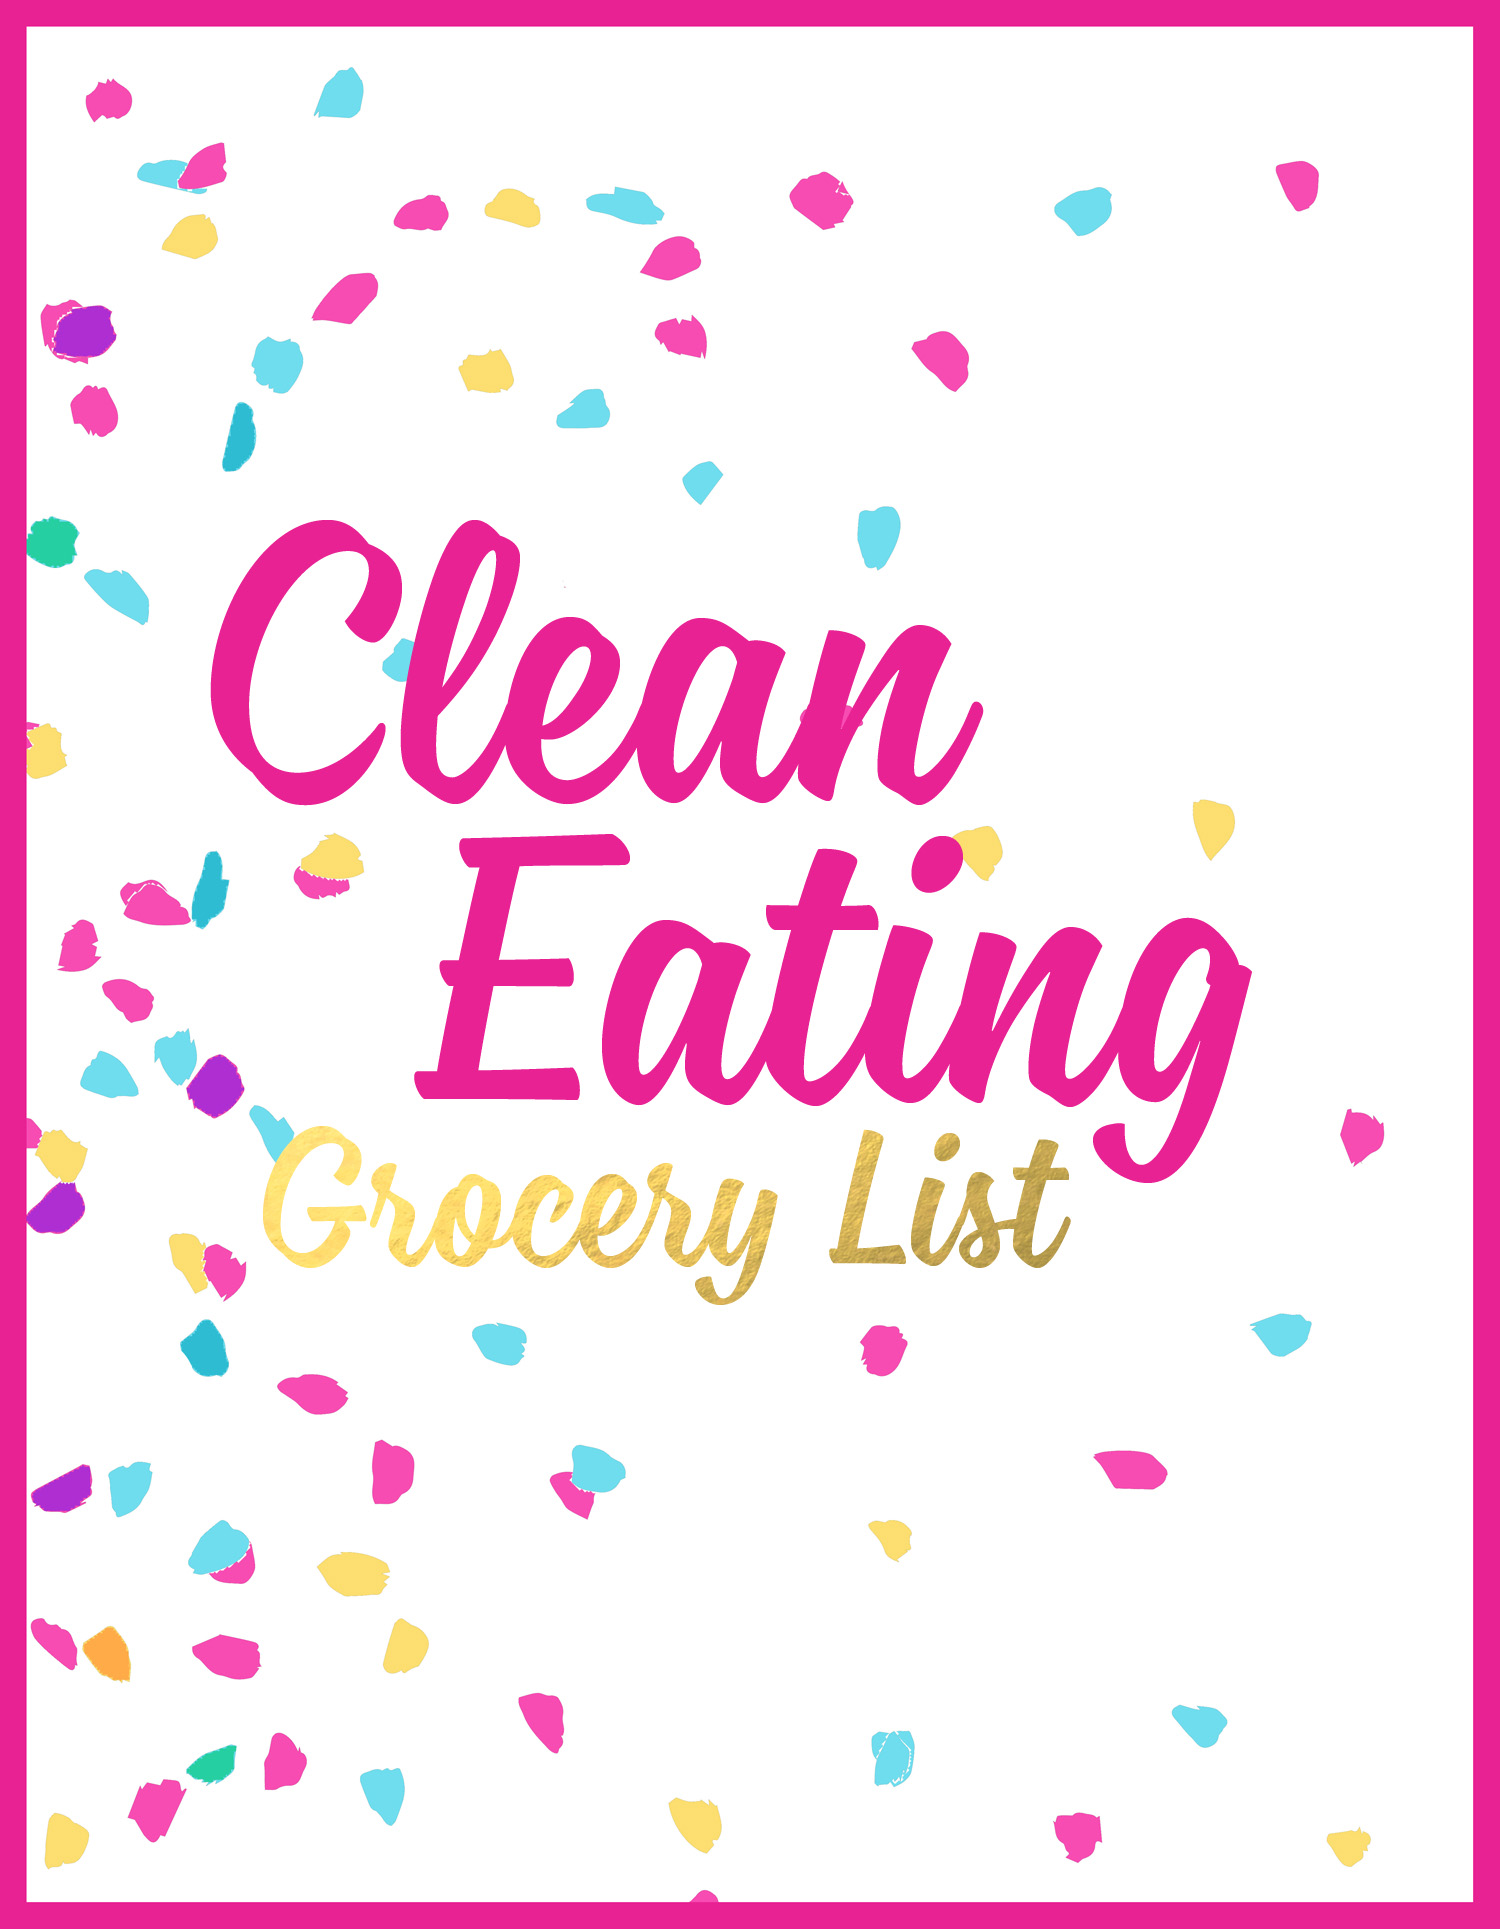 Julia Jackson - Get My Clean Eating Grocery List!